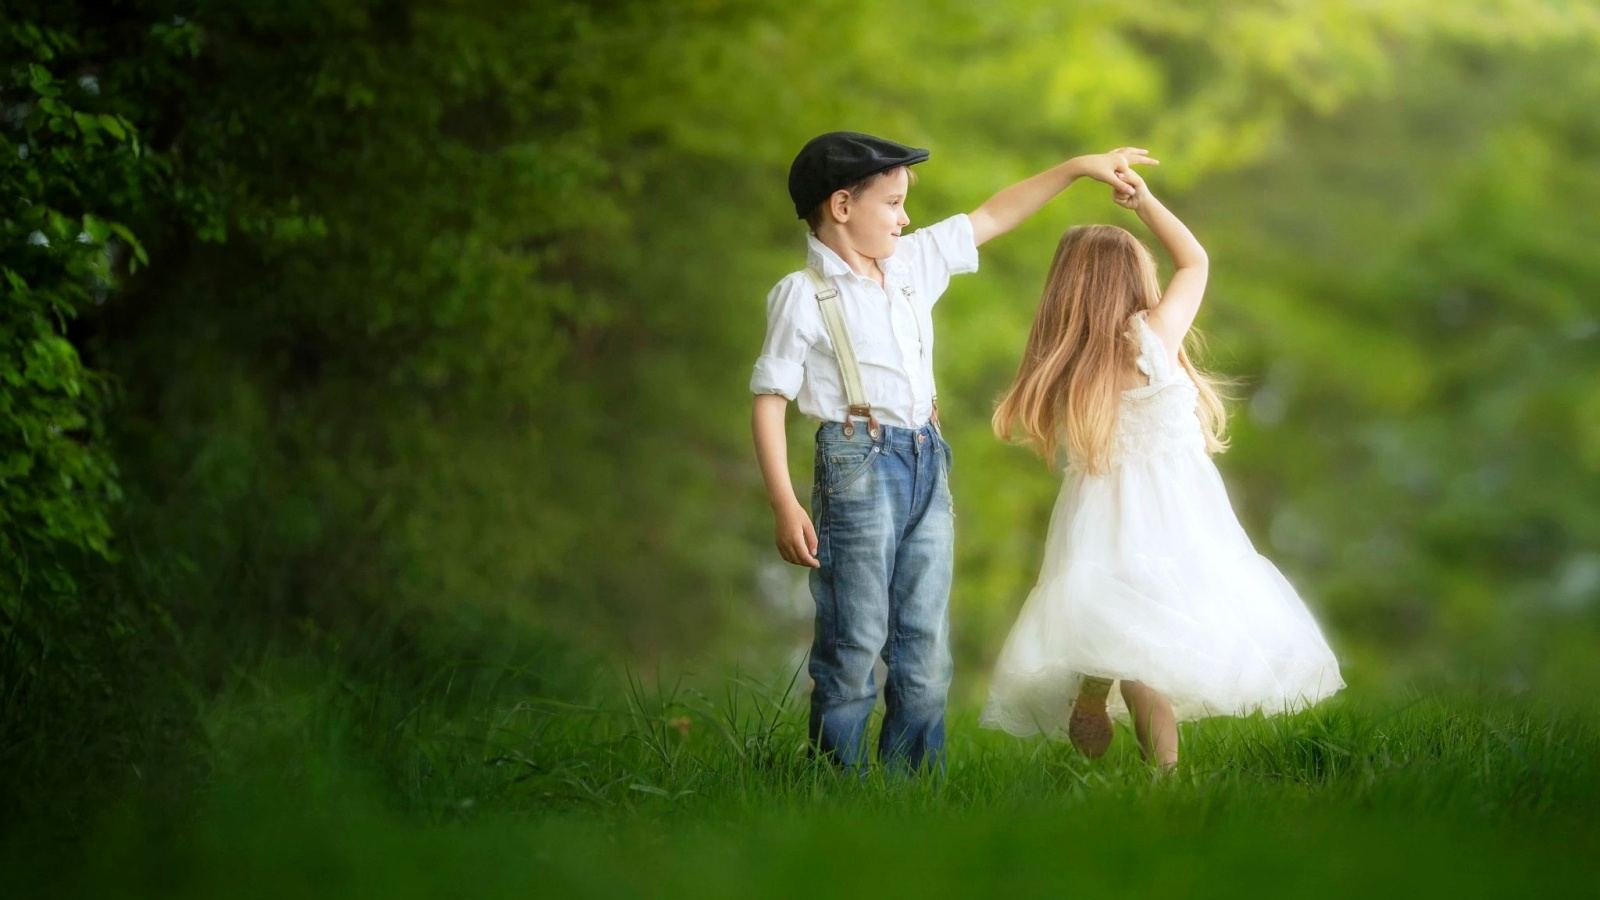 Boy And Girl Dance Wallpapers - 1600x900 - 294416